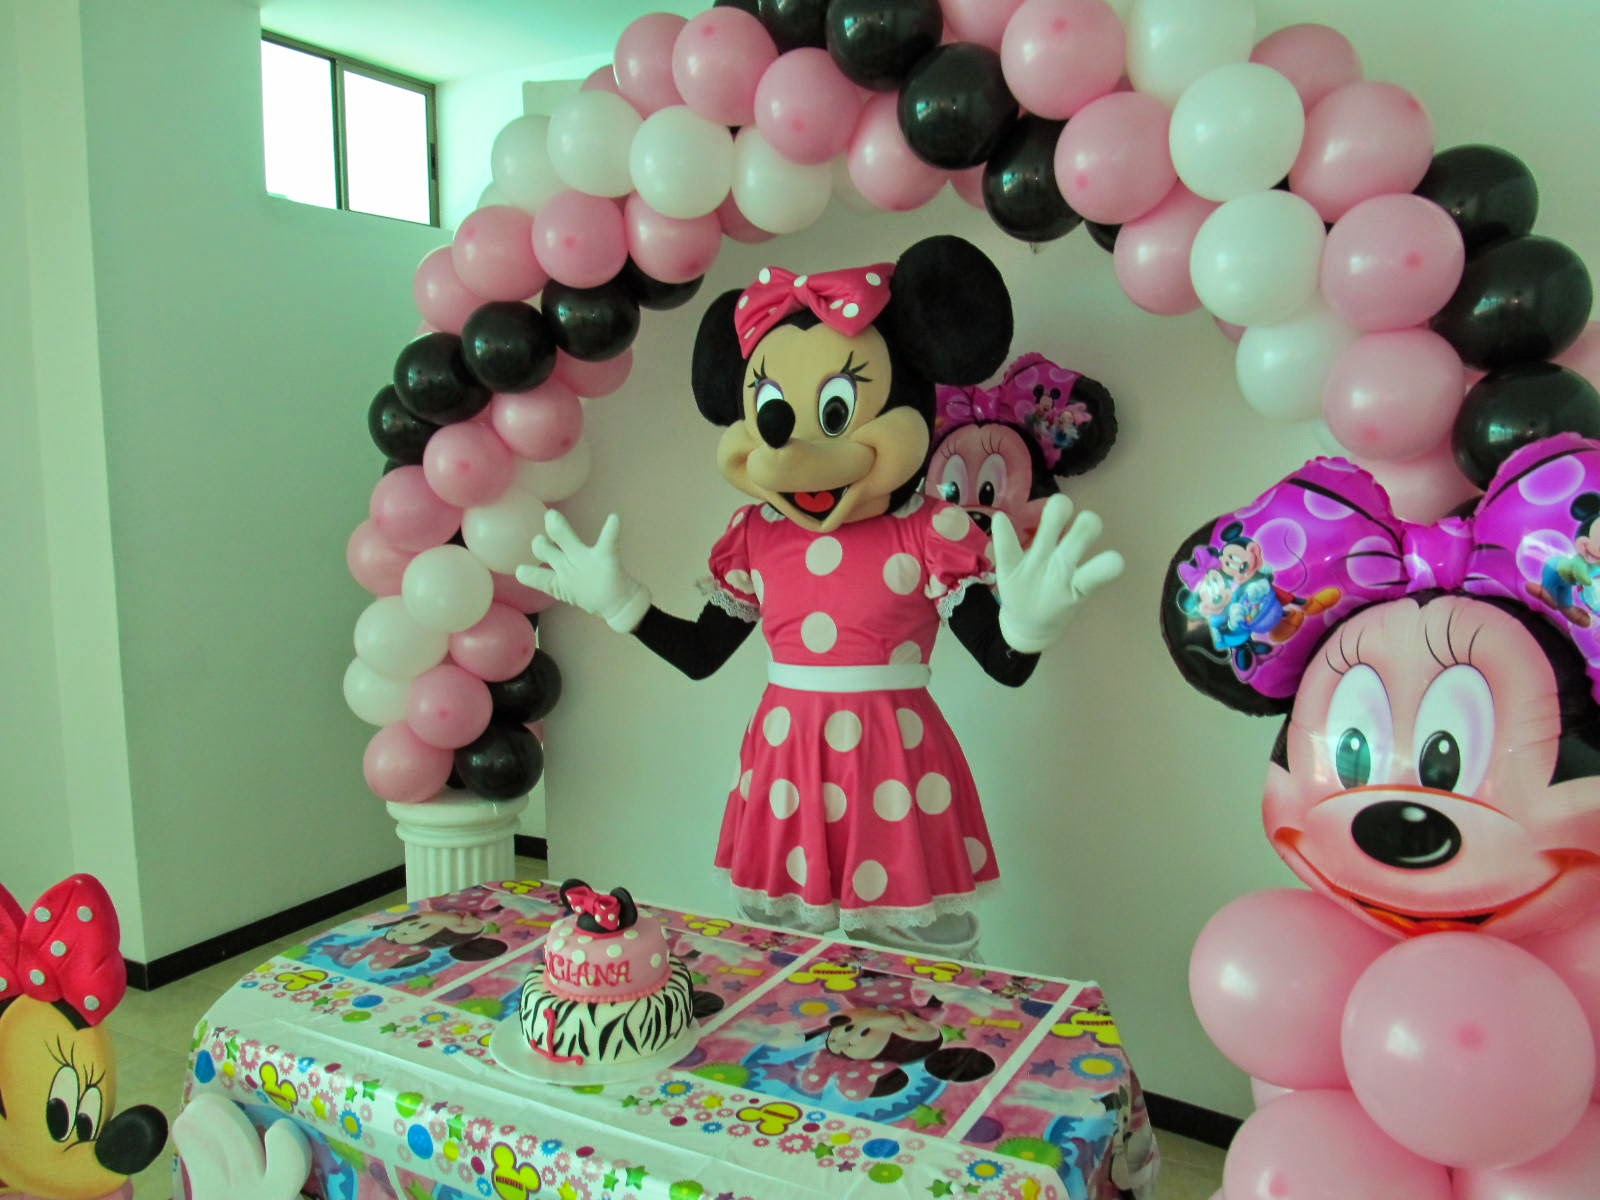 DECORACI N FIESTA MINNIE MOUSE FIESTAS INFANTILES Y